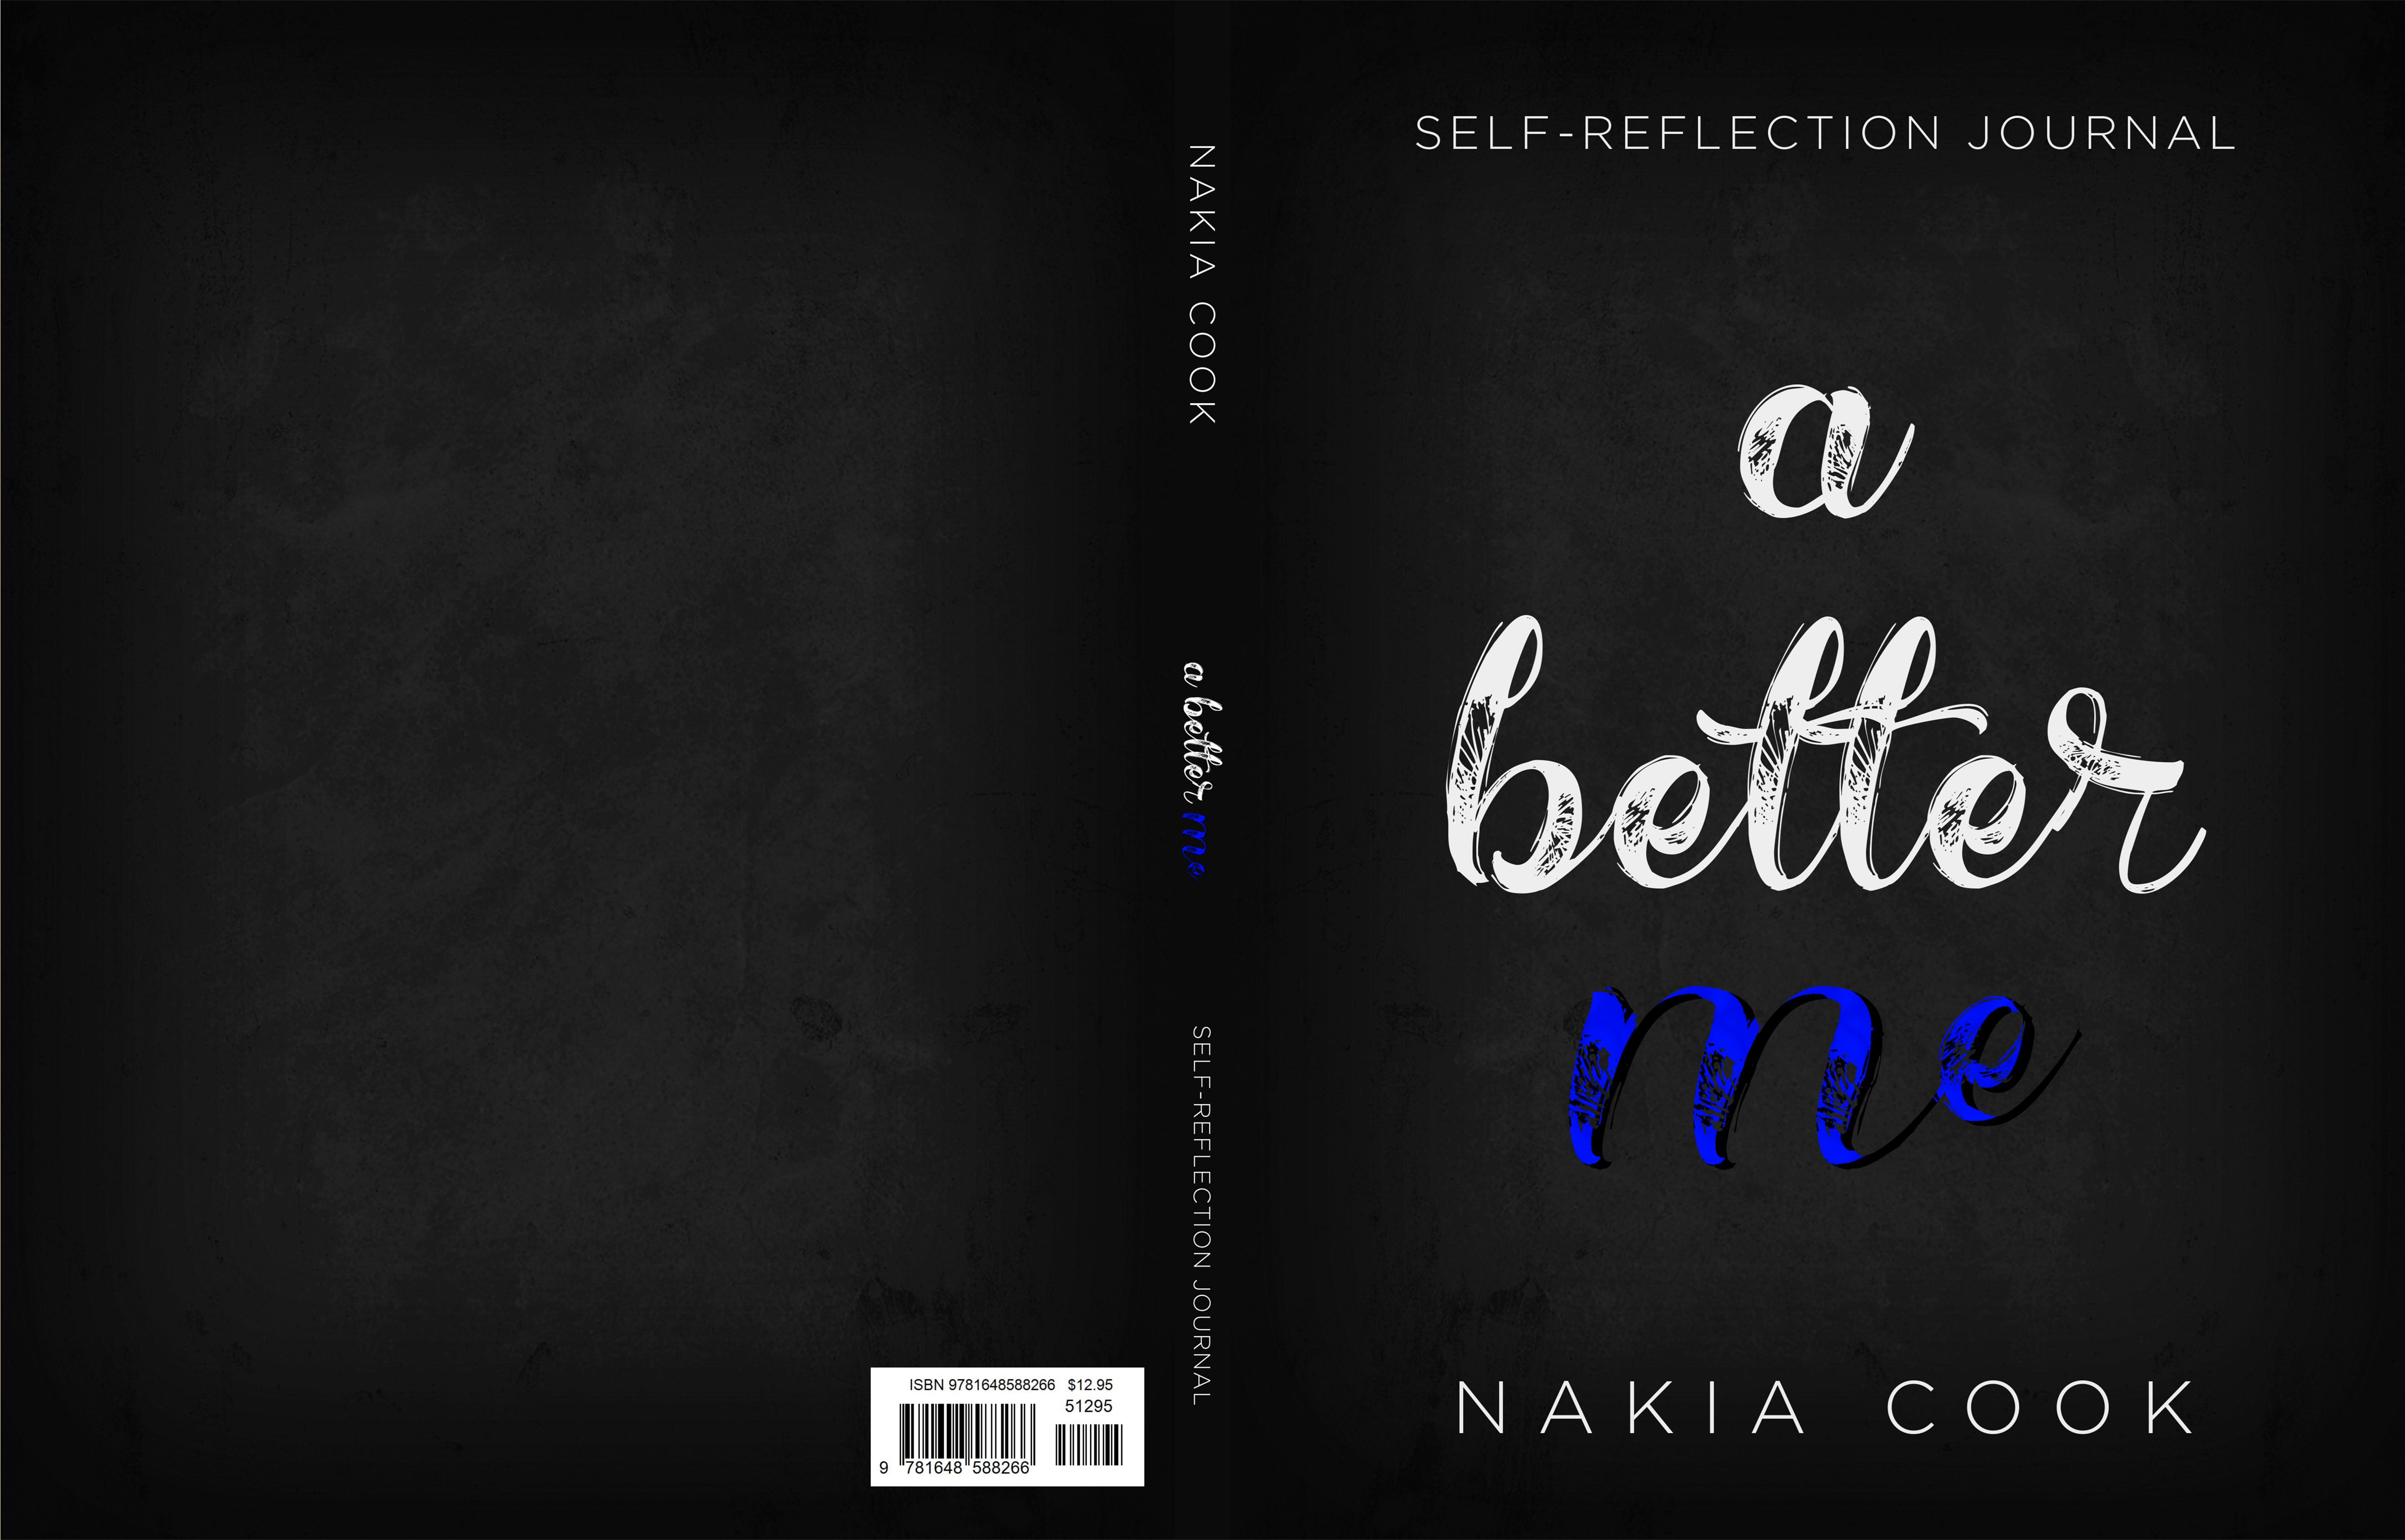 A Better Me  Self-Reflection Journal cover image